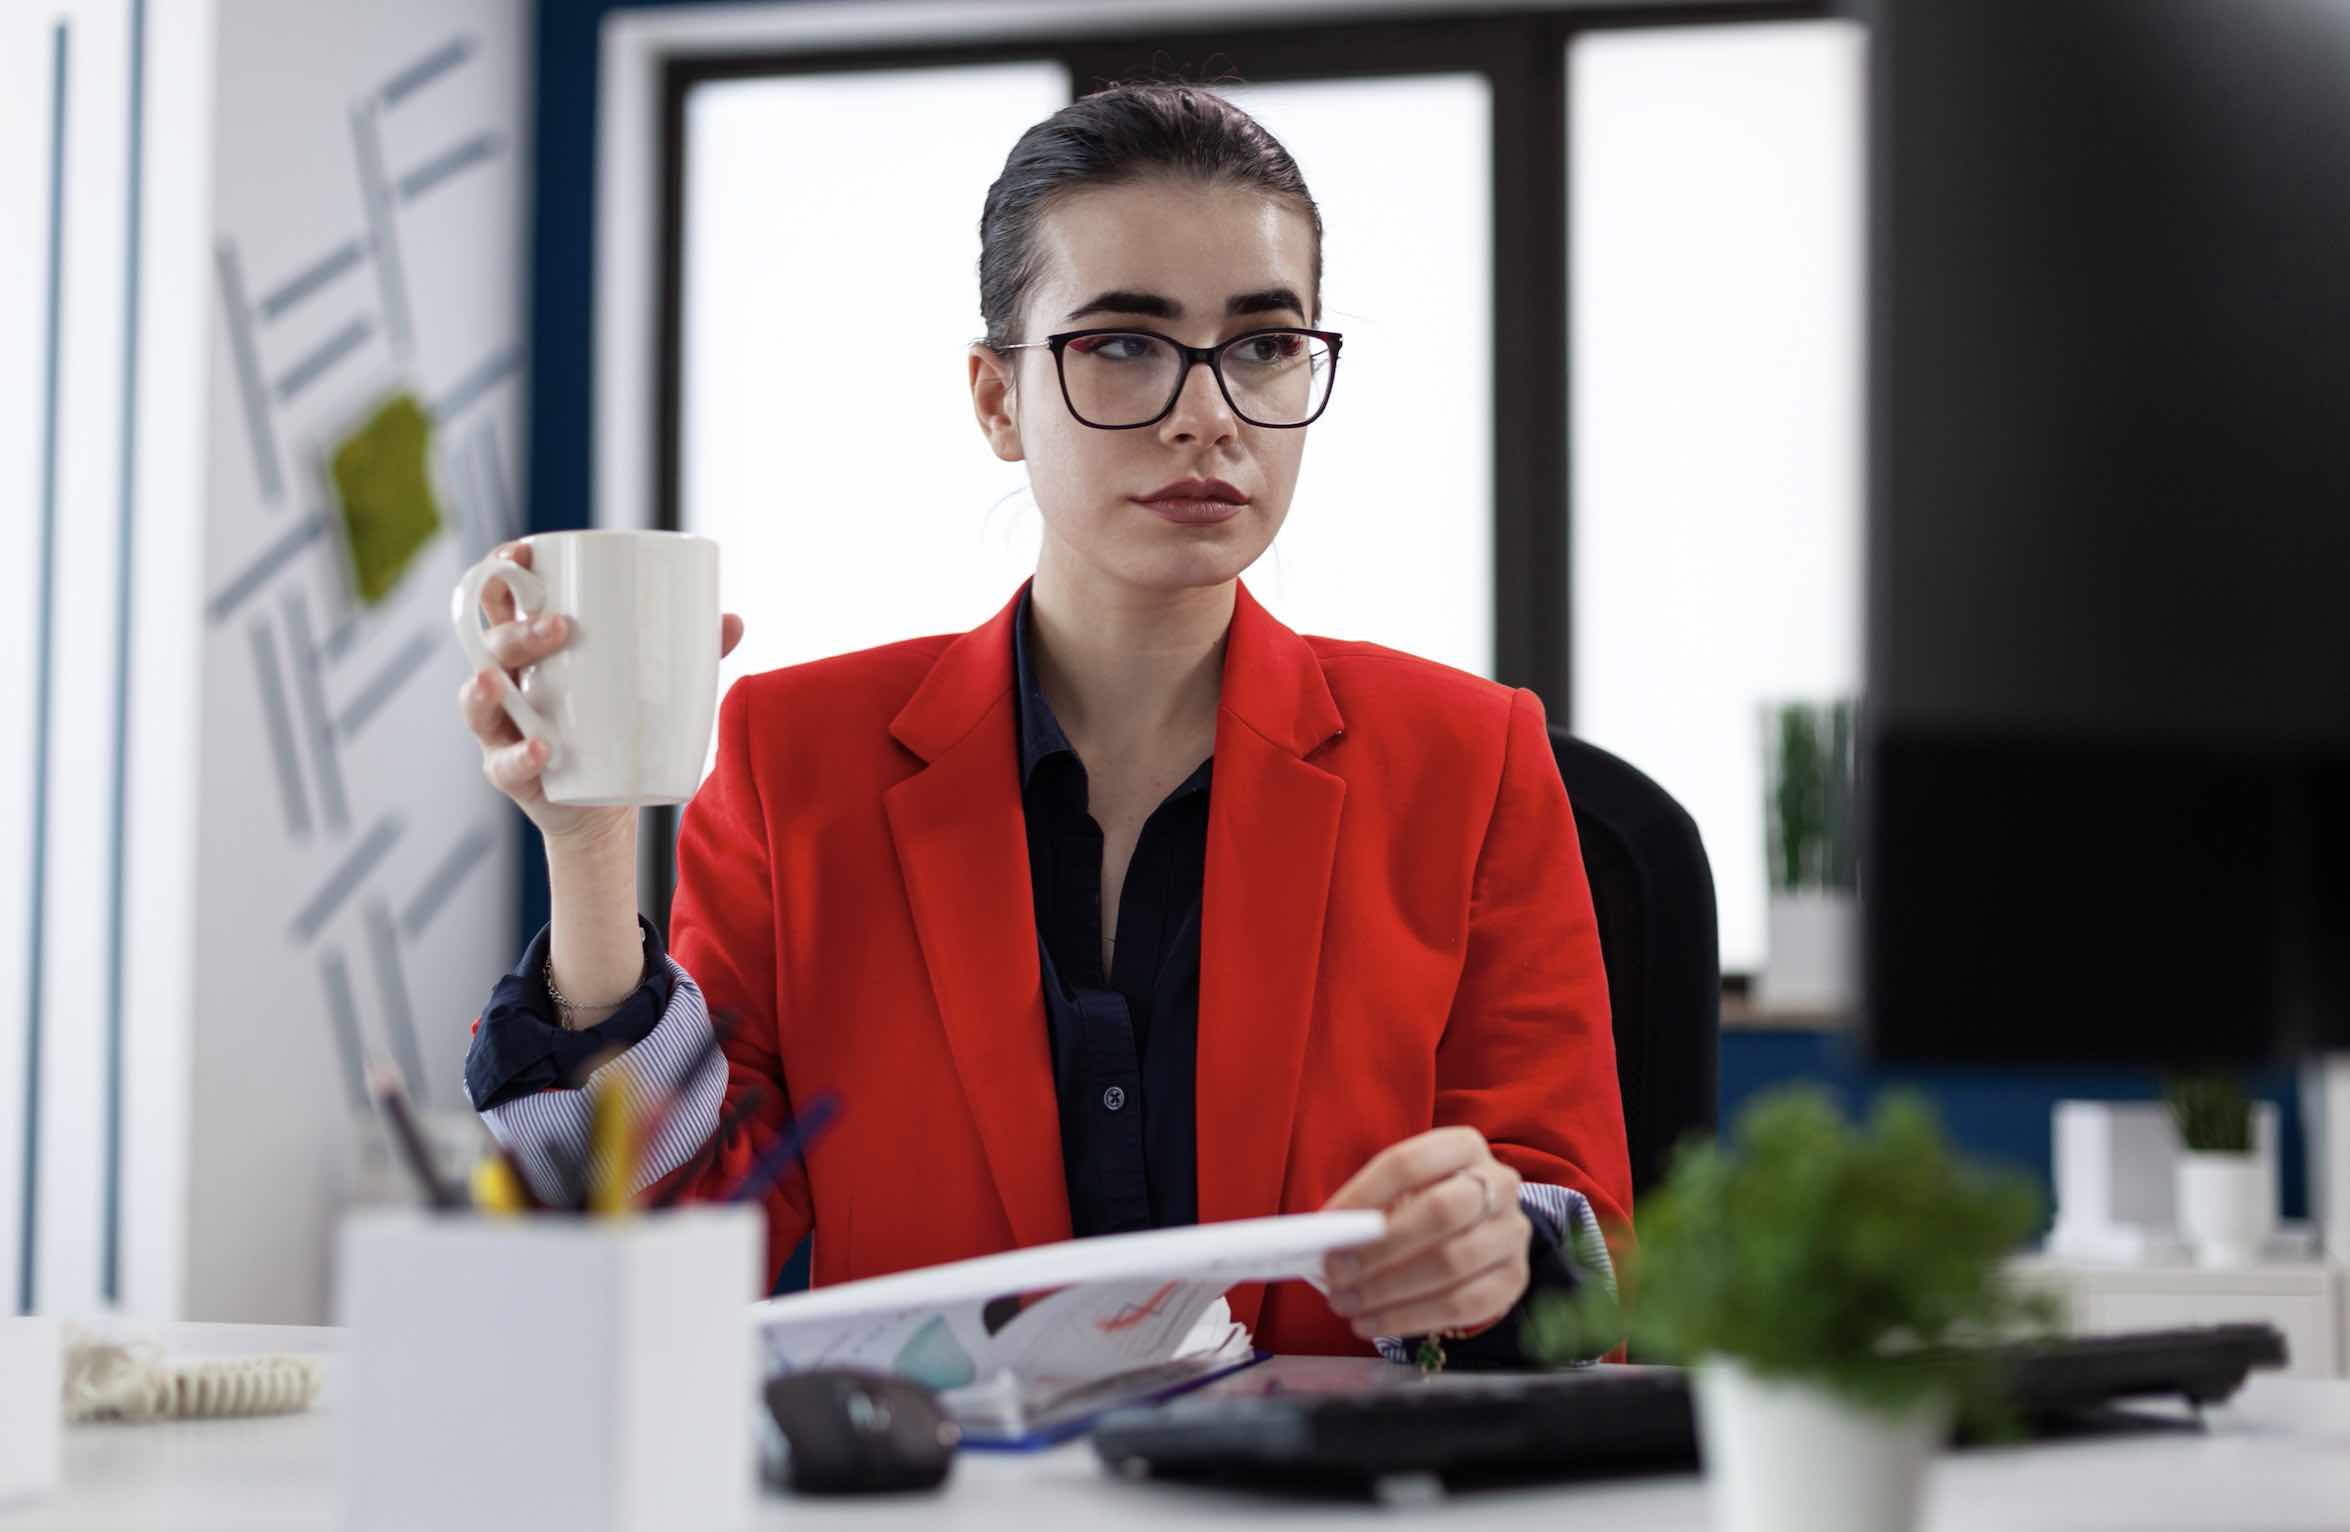 10 Signs of Addiction in the Workplace